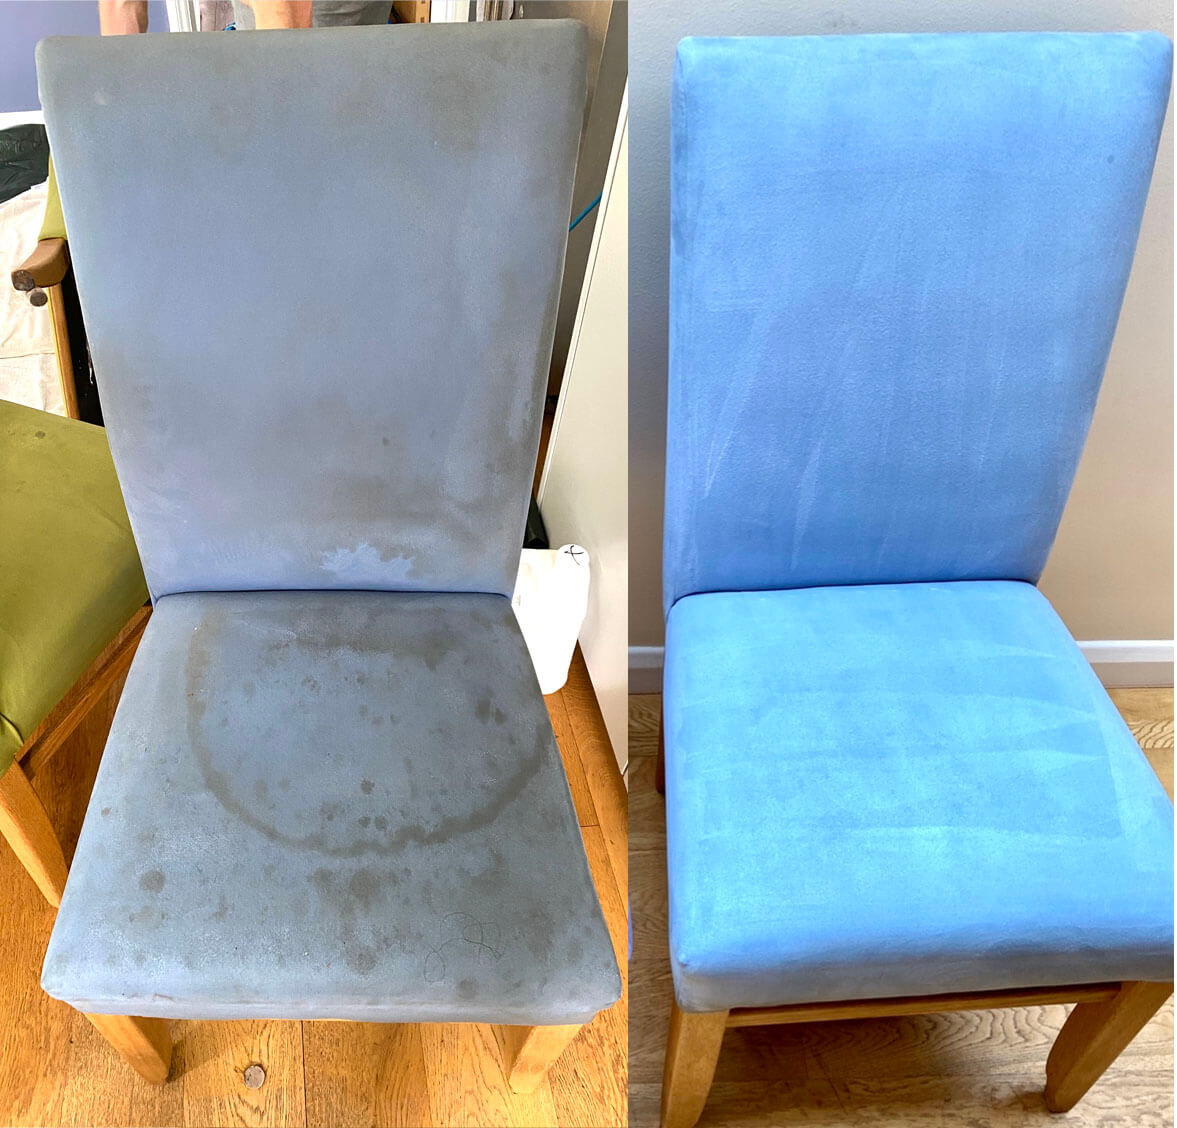 before after upholstery cleaning of chair by rubix clean in london, uk